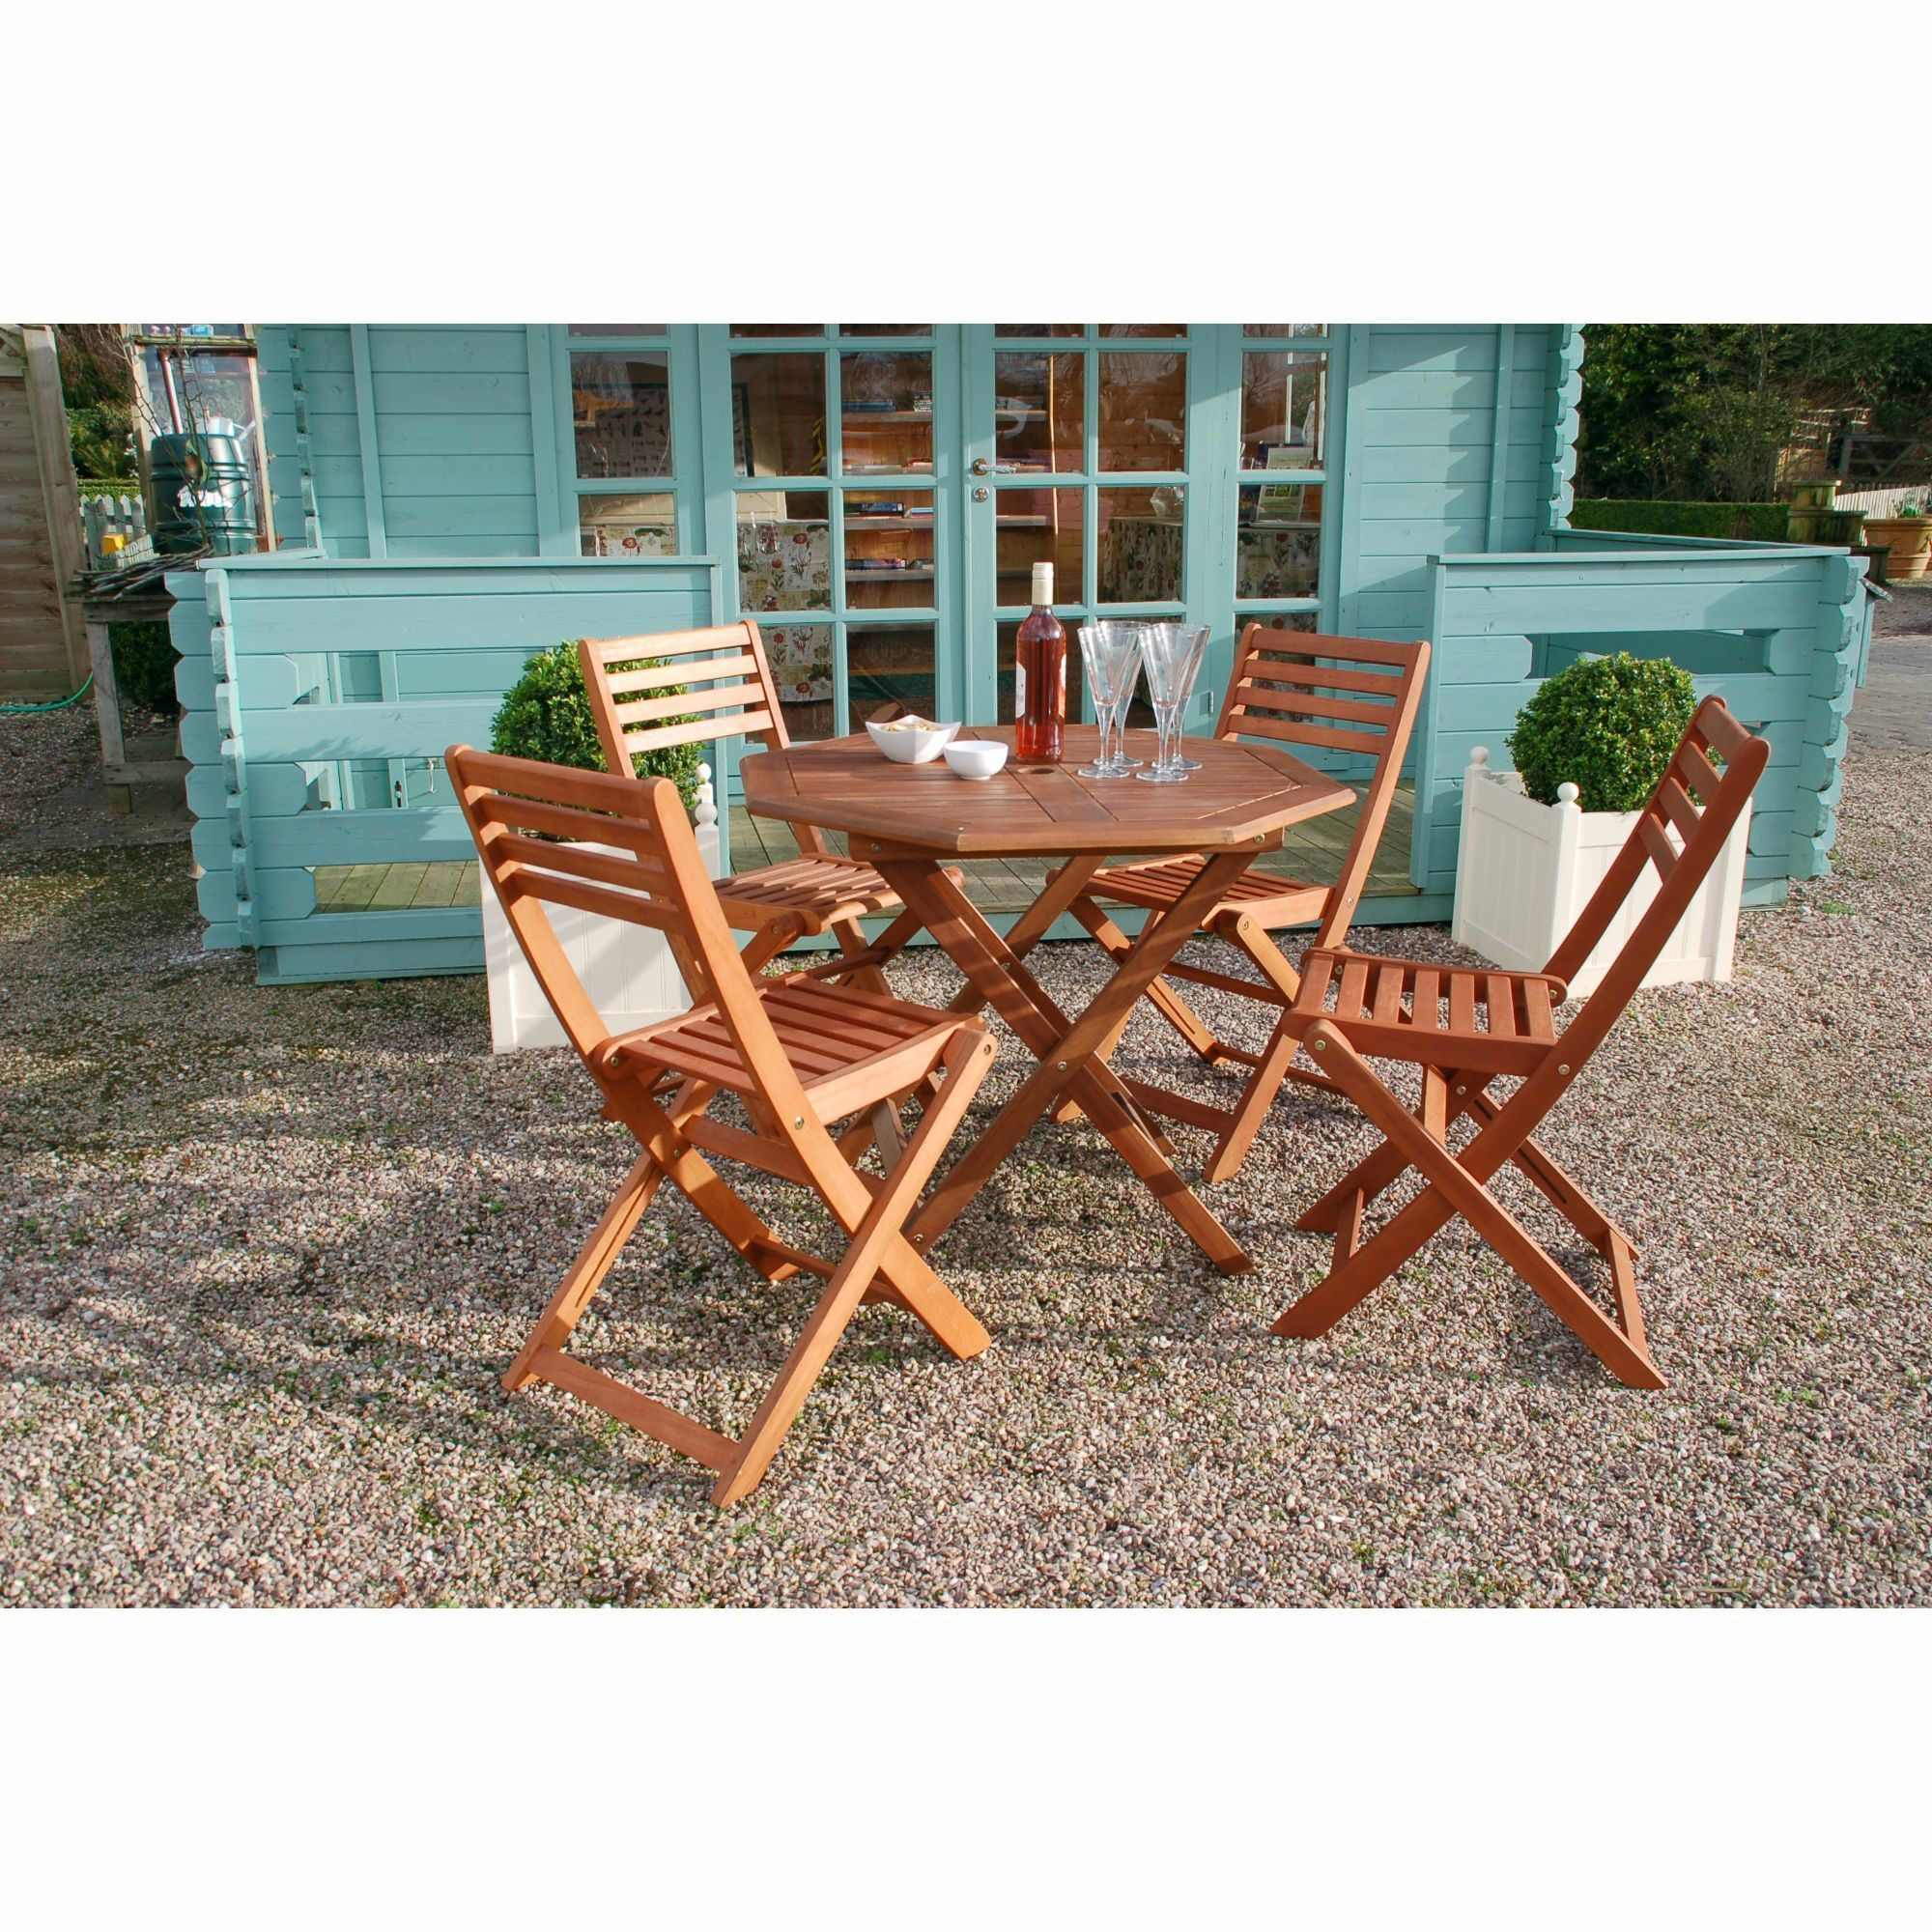 Wooden Garden Furniture Folding Patio Table And Chairs 4 Seat ...